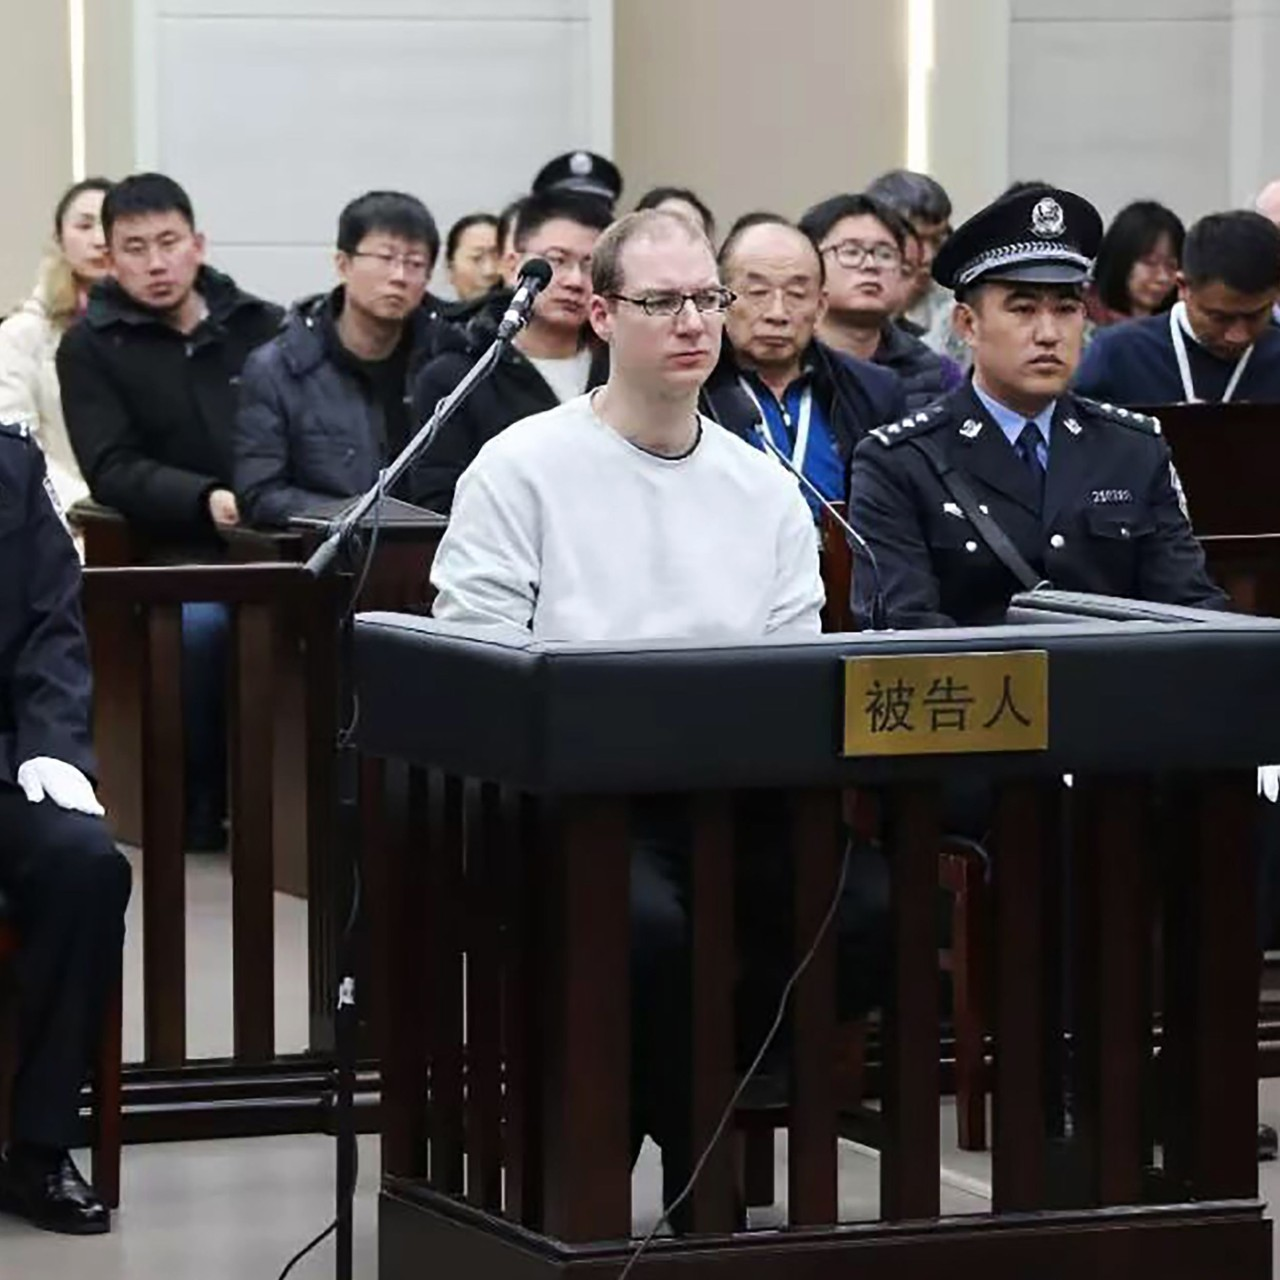 Canadian Robert Schellenberg sentenced to death in China for drug